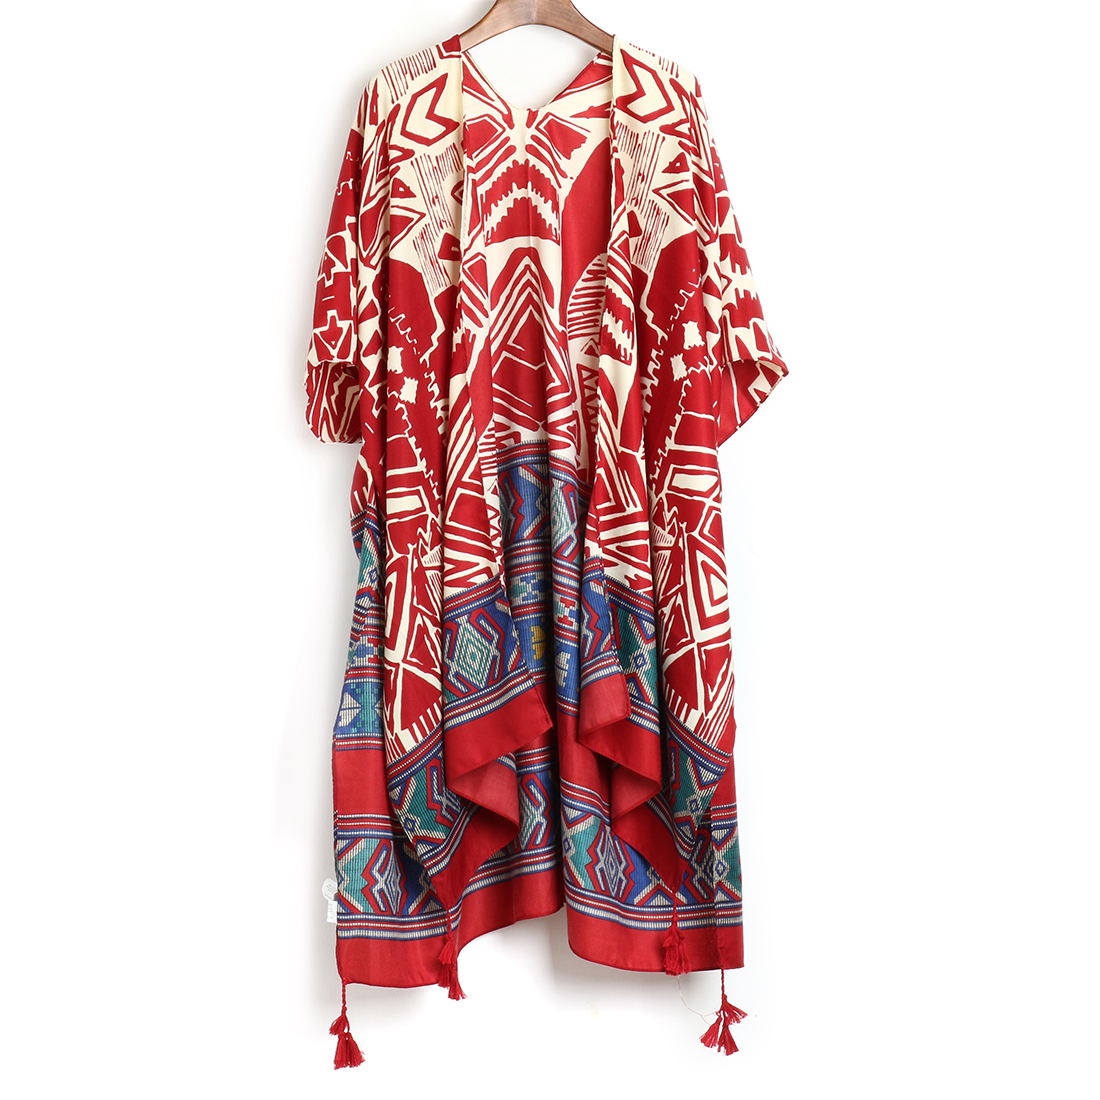 Summer Women Blusas Casual Loose Bohemian Blouse Shirts Long Outerwear New Boho Irregular Printed Kimono Cardigan 2019 8 Style(China)